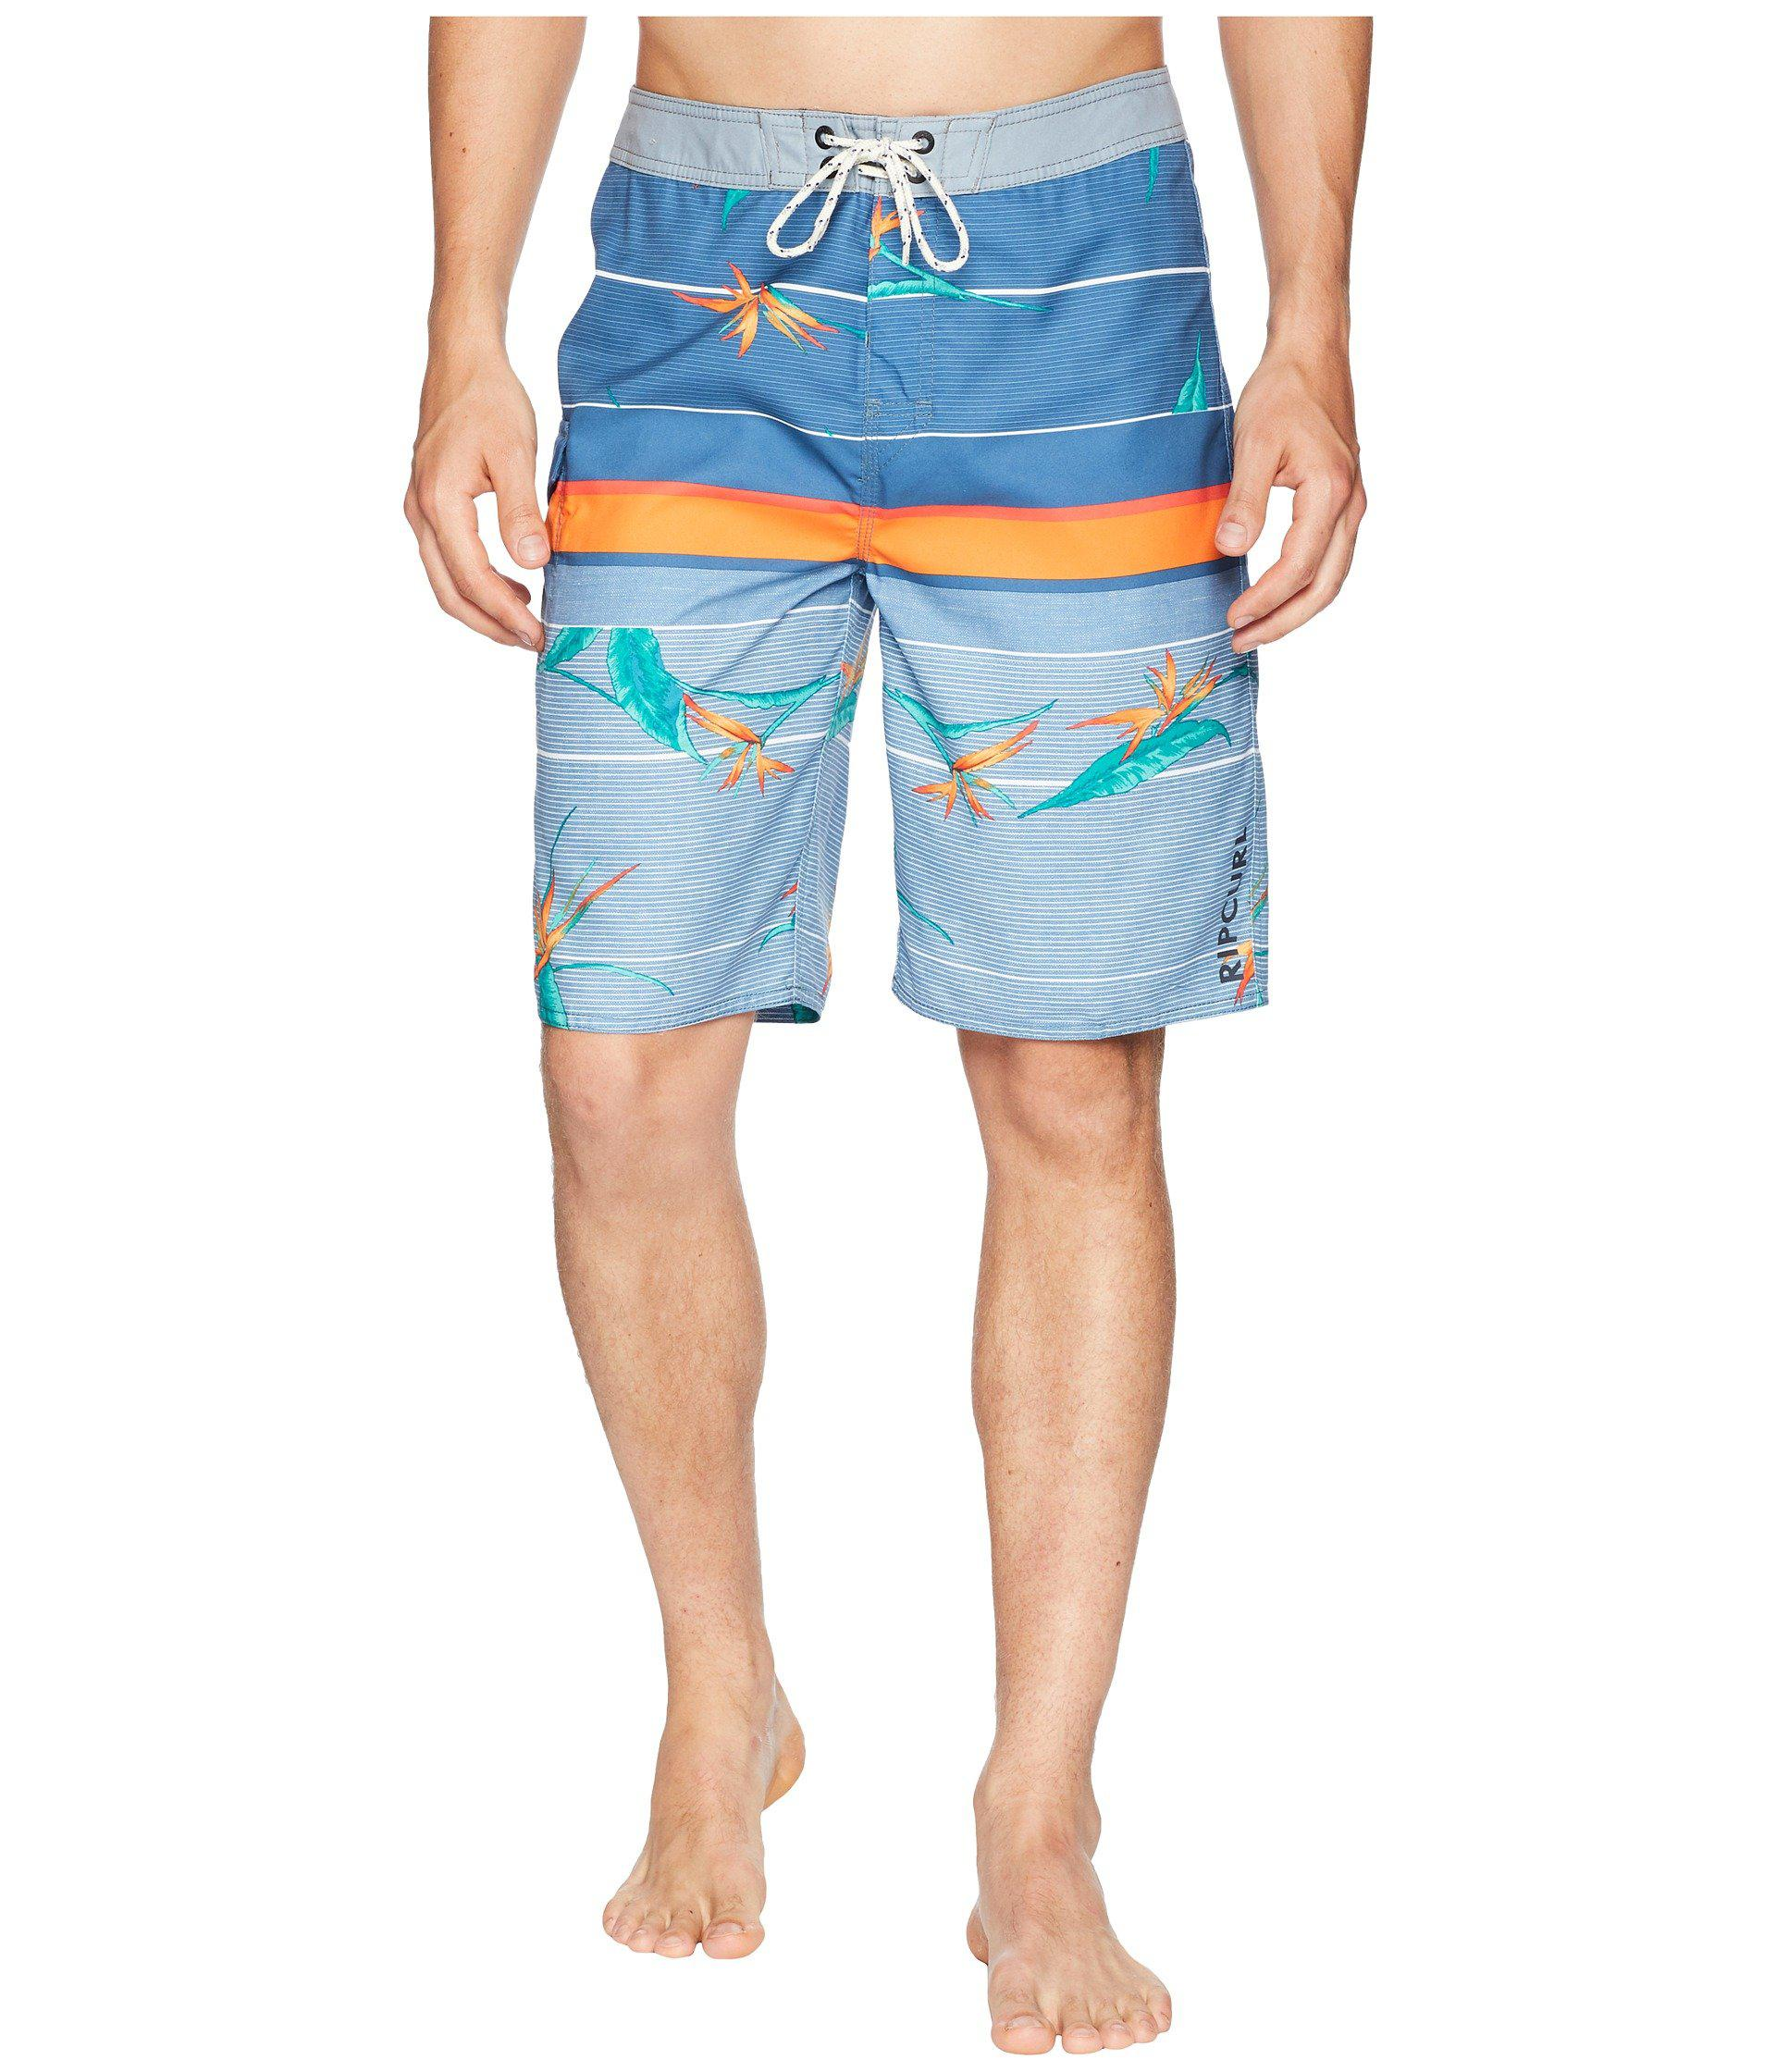 6fddef15e0 Lyst - Rip Curl Dazz Boardshorts in Blue for Men - Save 20%